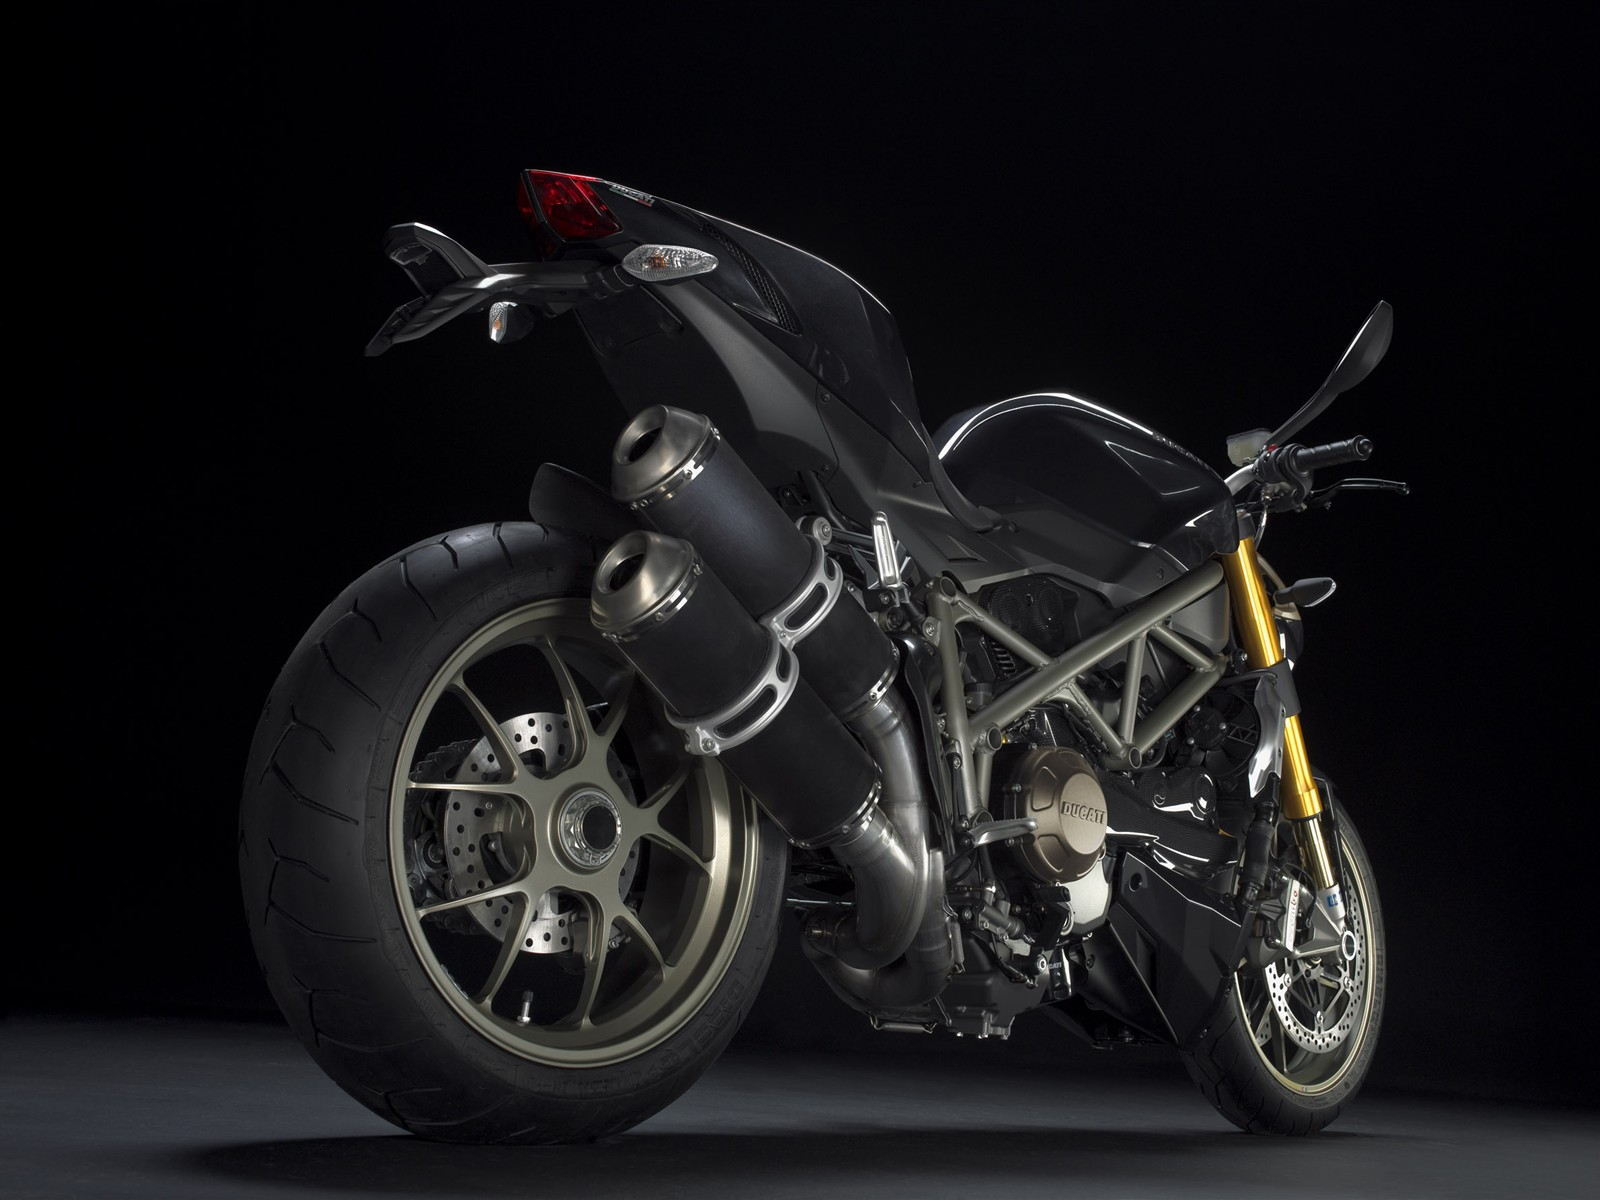 Ducati Streetfighter Rear 271.74 Kb